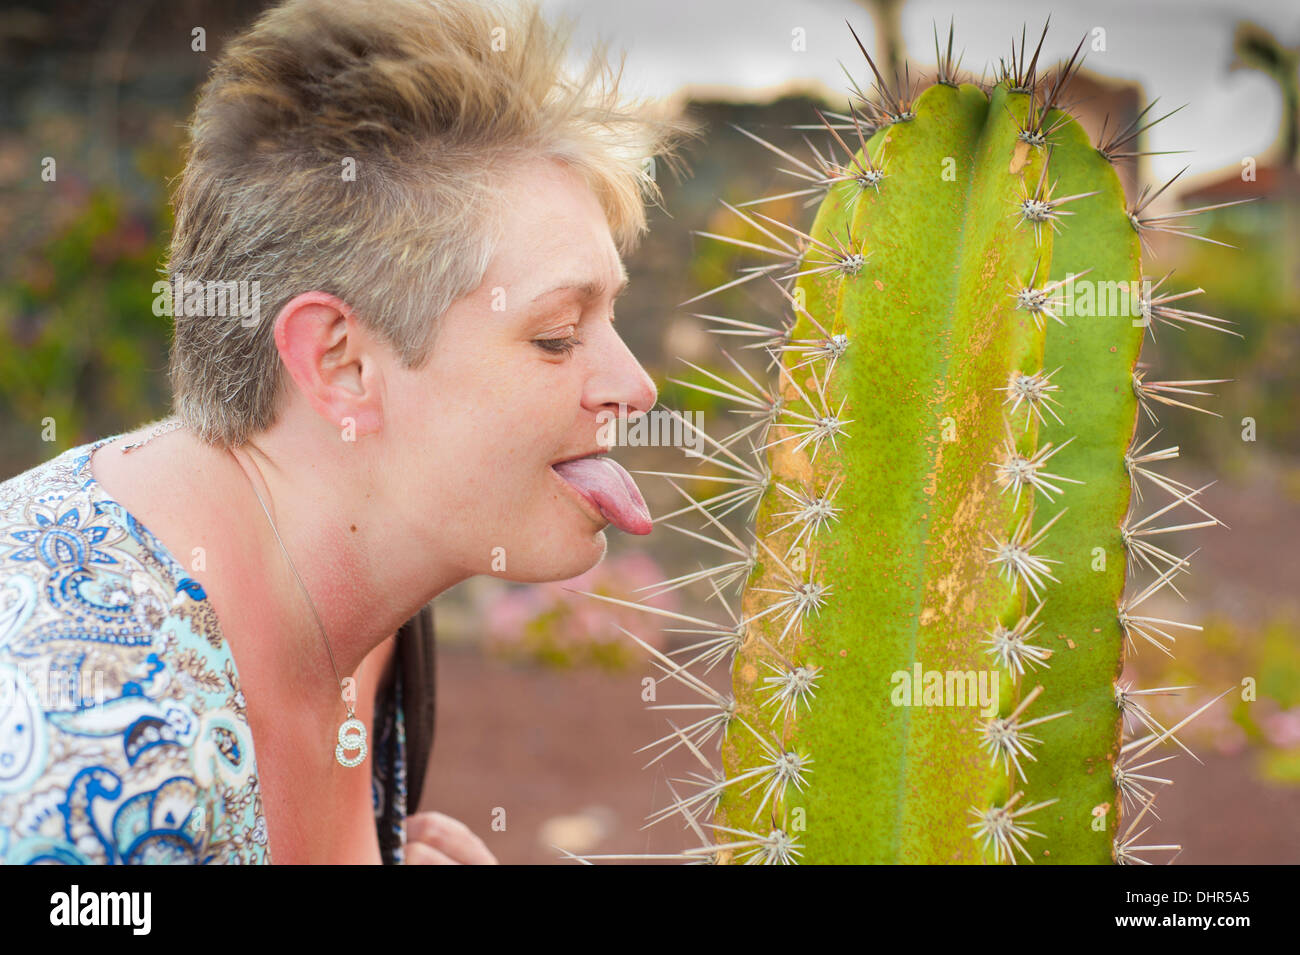 Female sticking tongue out licking a cactus with big spikes - Stock Image